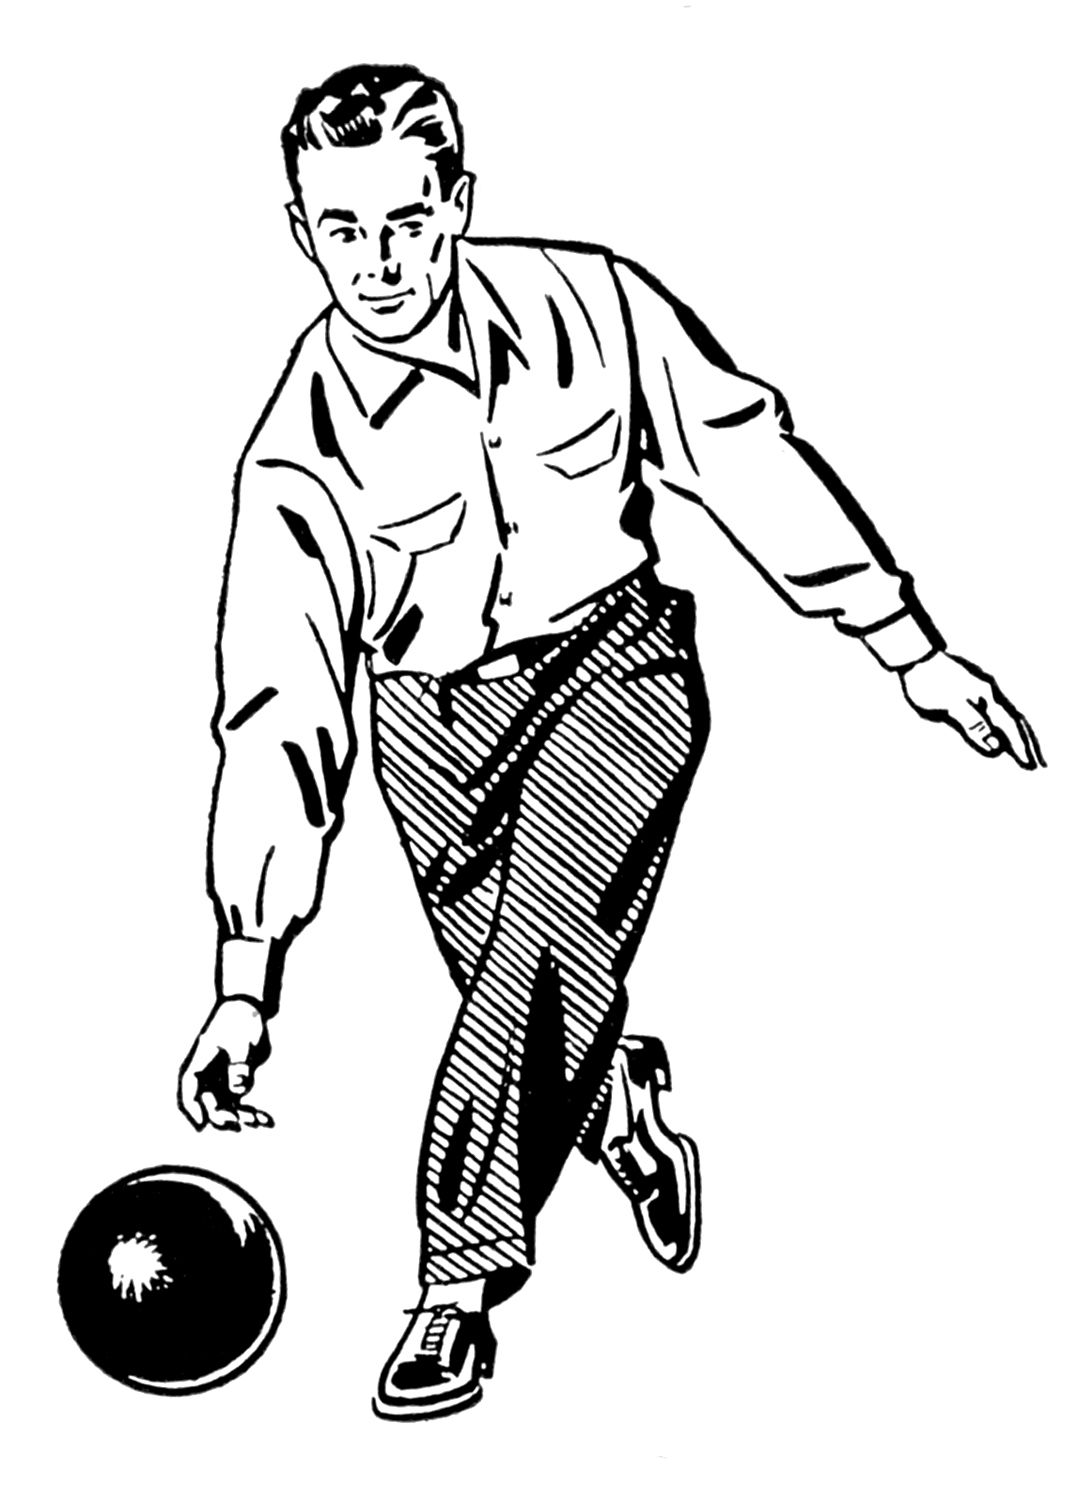 Bw clipart woman bowling image royalty free stock Retro Clip Art - Woman and Man Bowling | BOWLING | Clip art, Female ... image royalty free stock